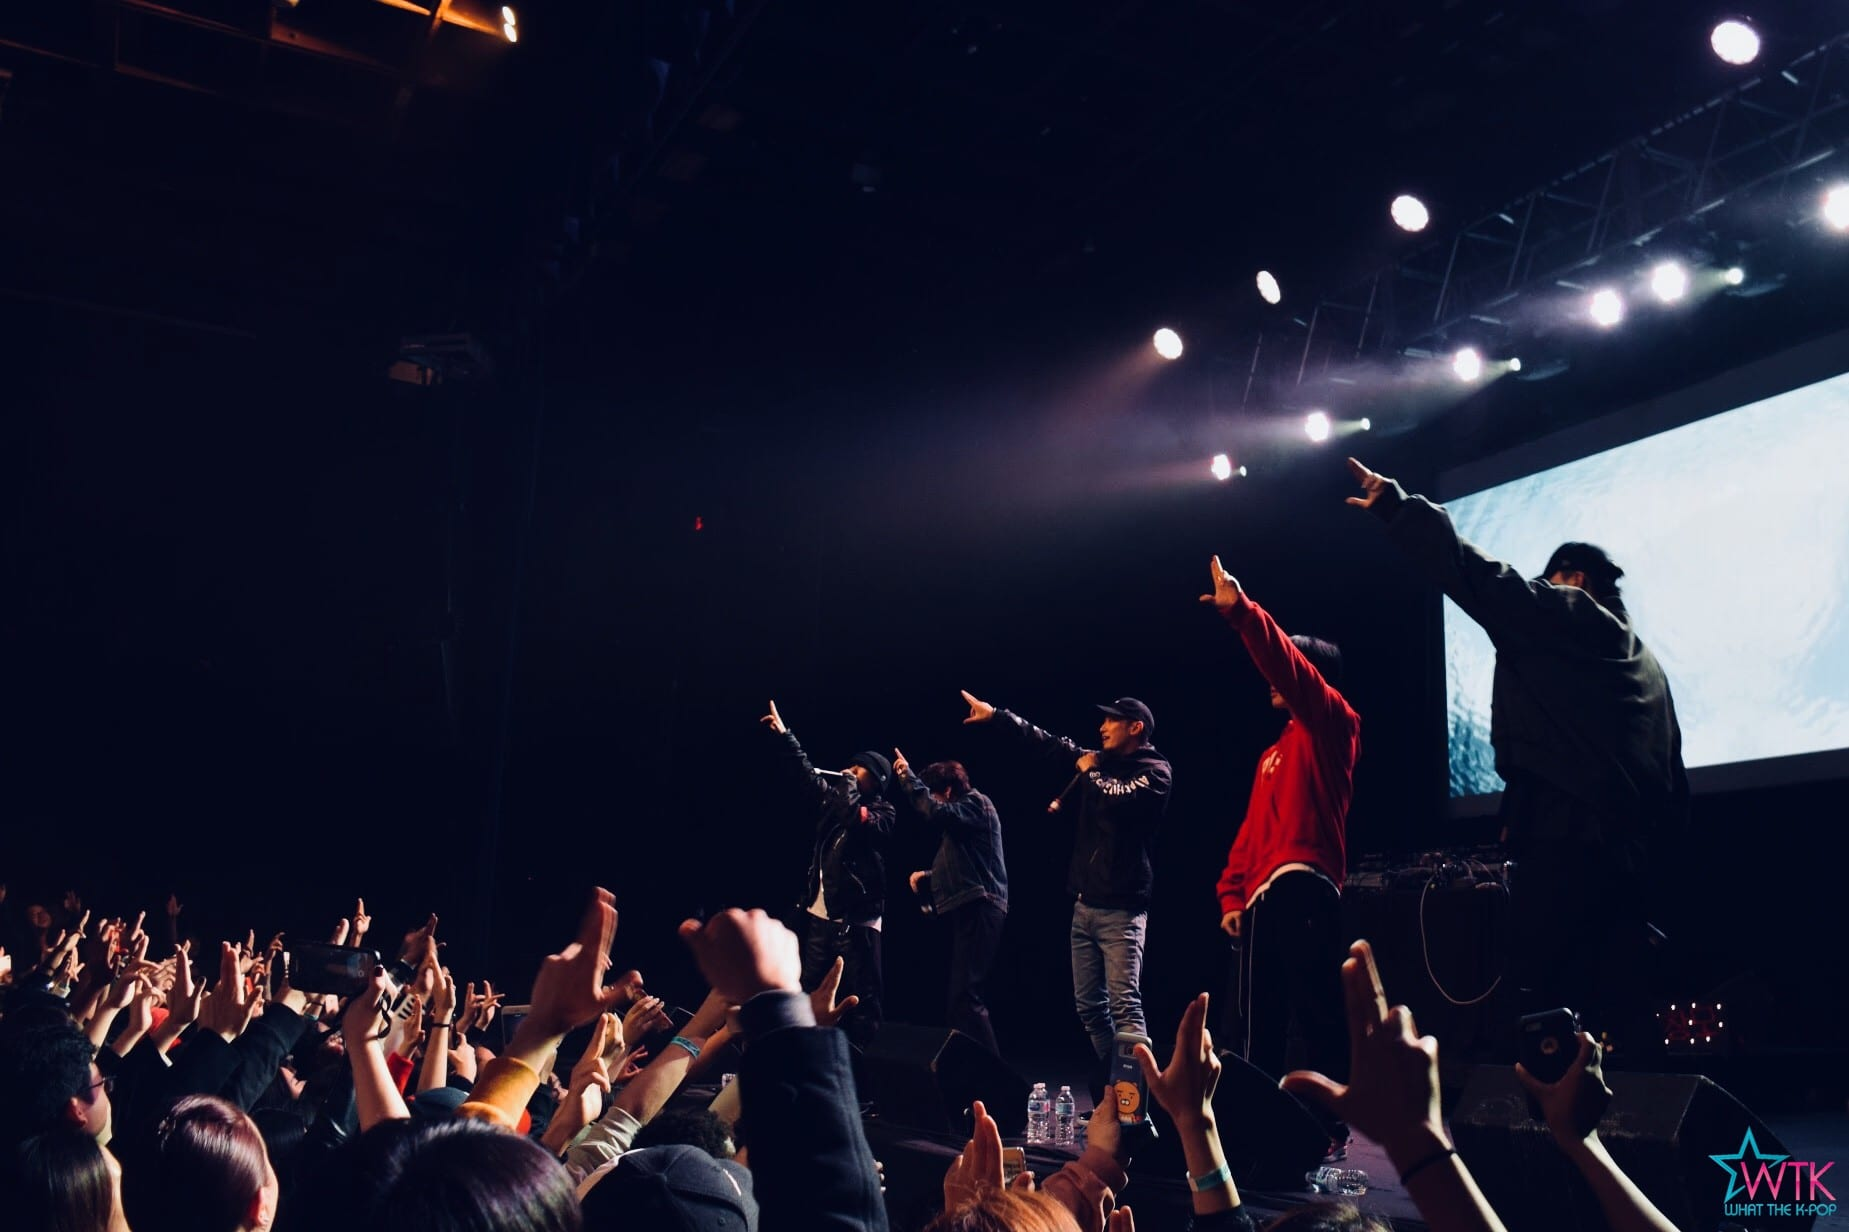 WTK REVIEW: ILLIONAIRE Ambition Tour Brings The Heat In Atlanta